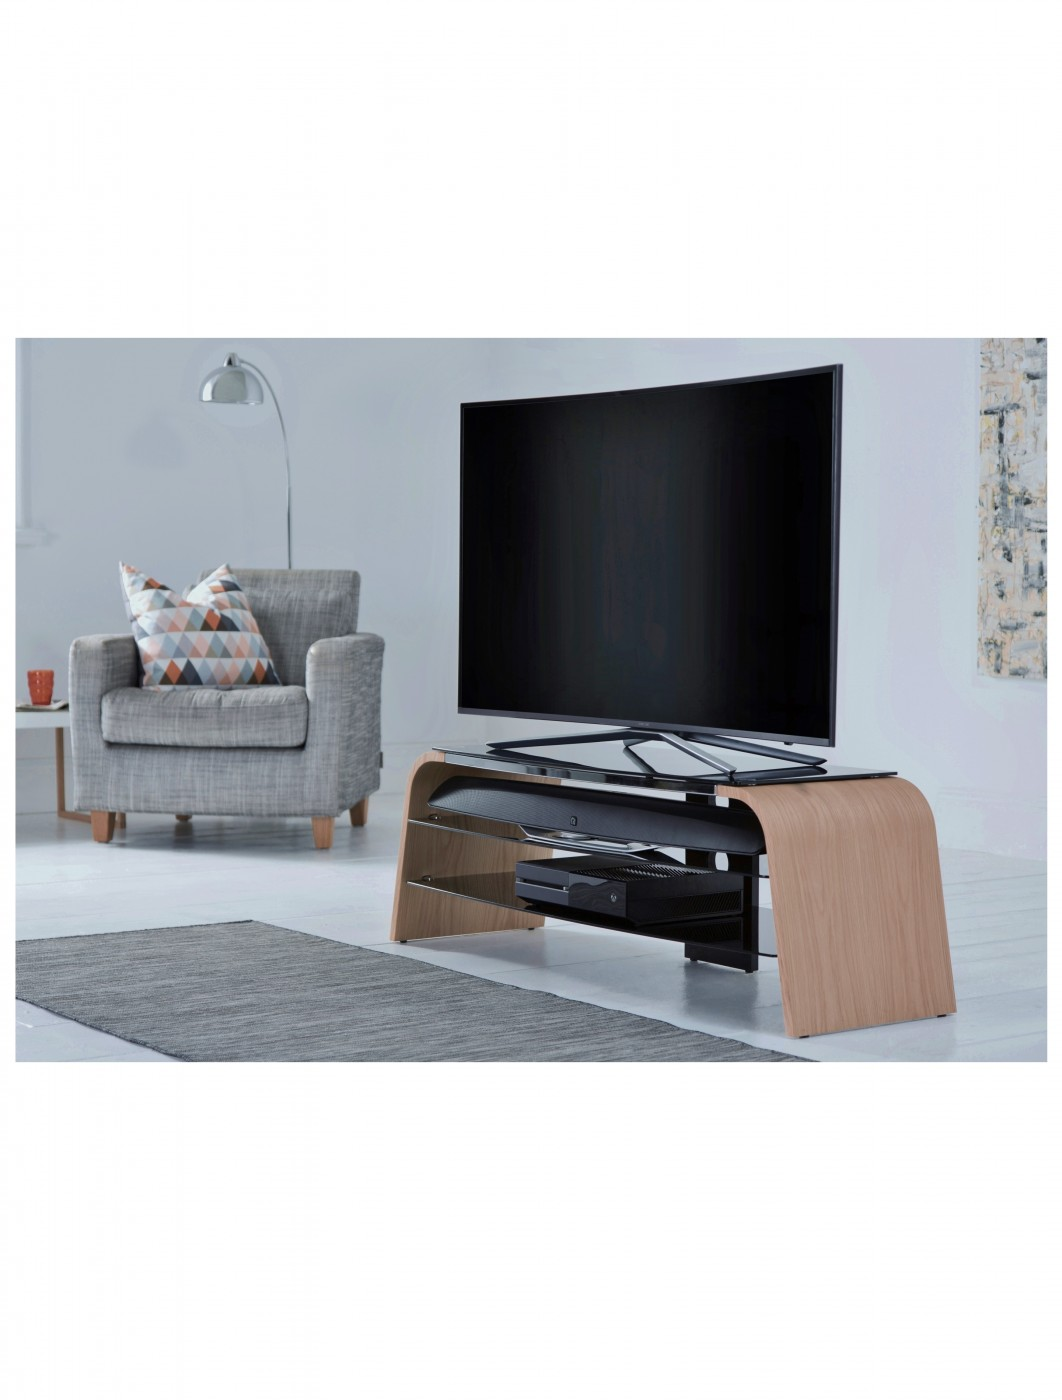 Alphason Spectrum 1200mm TV Stand ADSP1200-LO